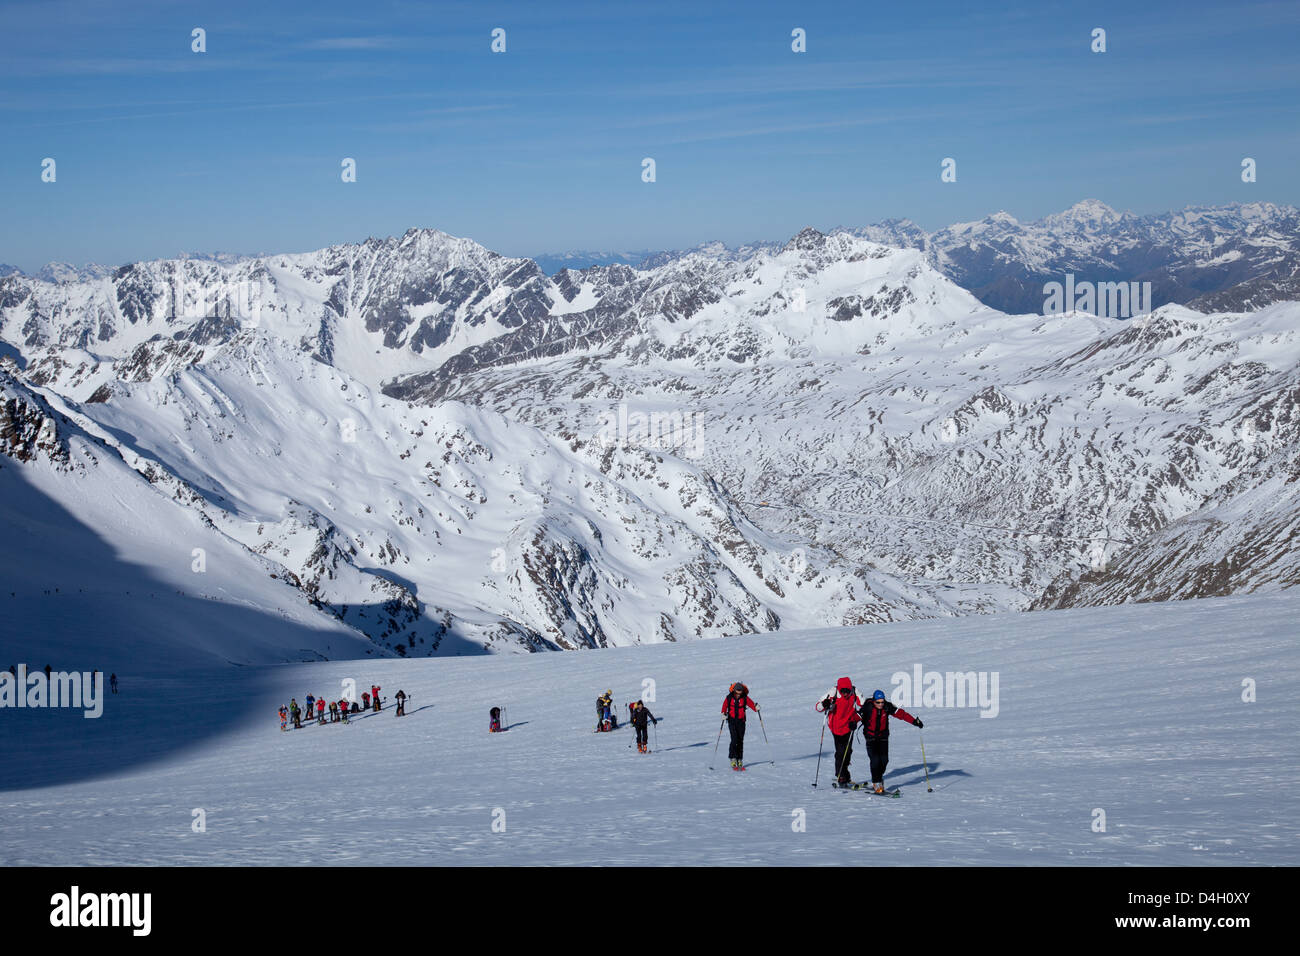 Ski touring in the Alps, ascent to Punta San Matteo, on the border of Lombardia and Trentino-Alto Adige, Italy - Stock Image